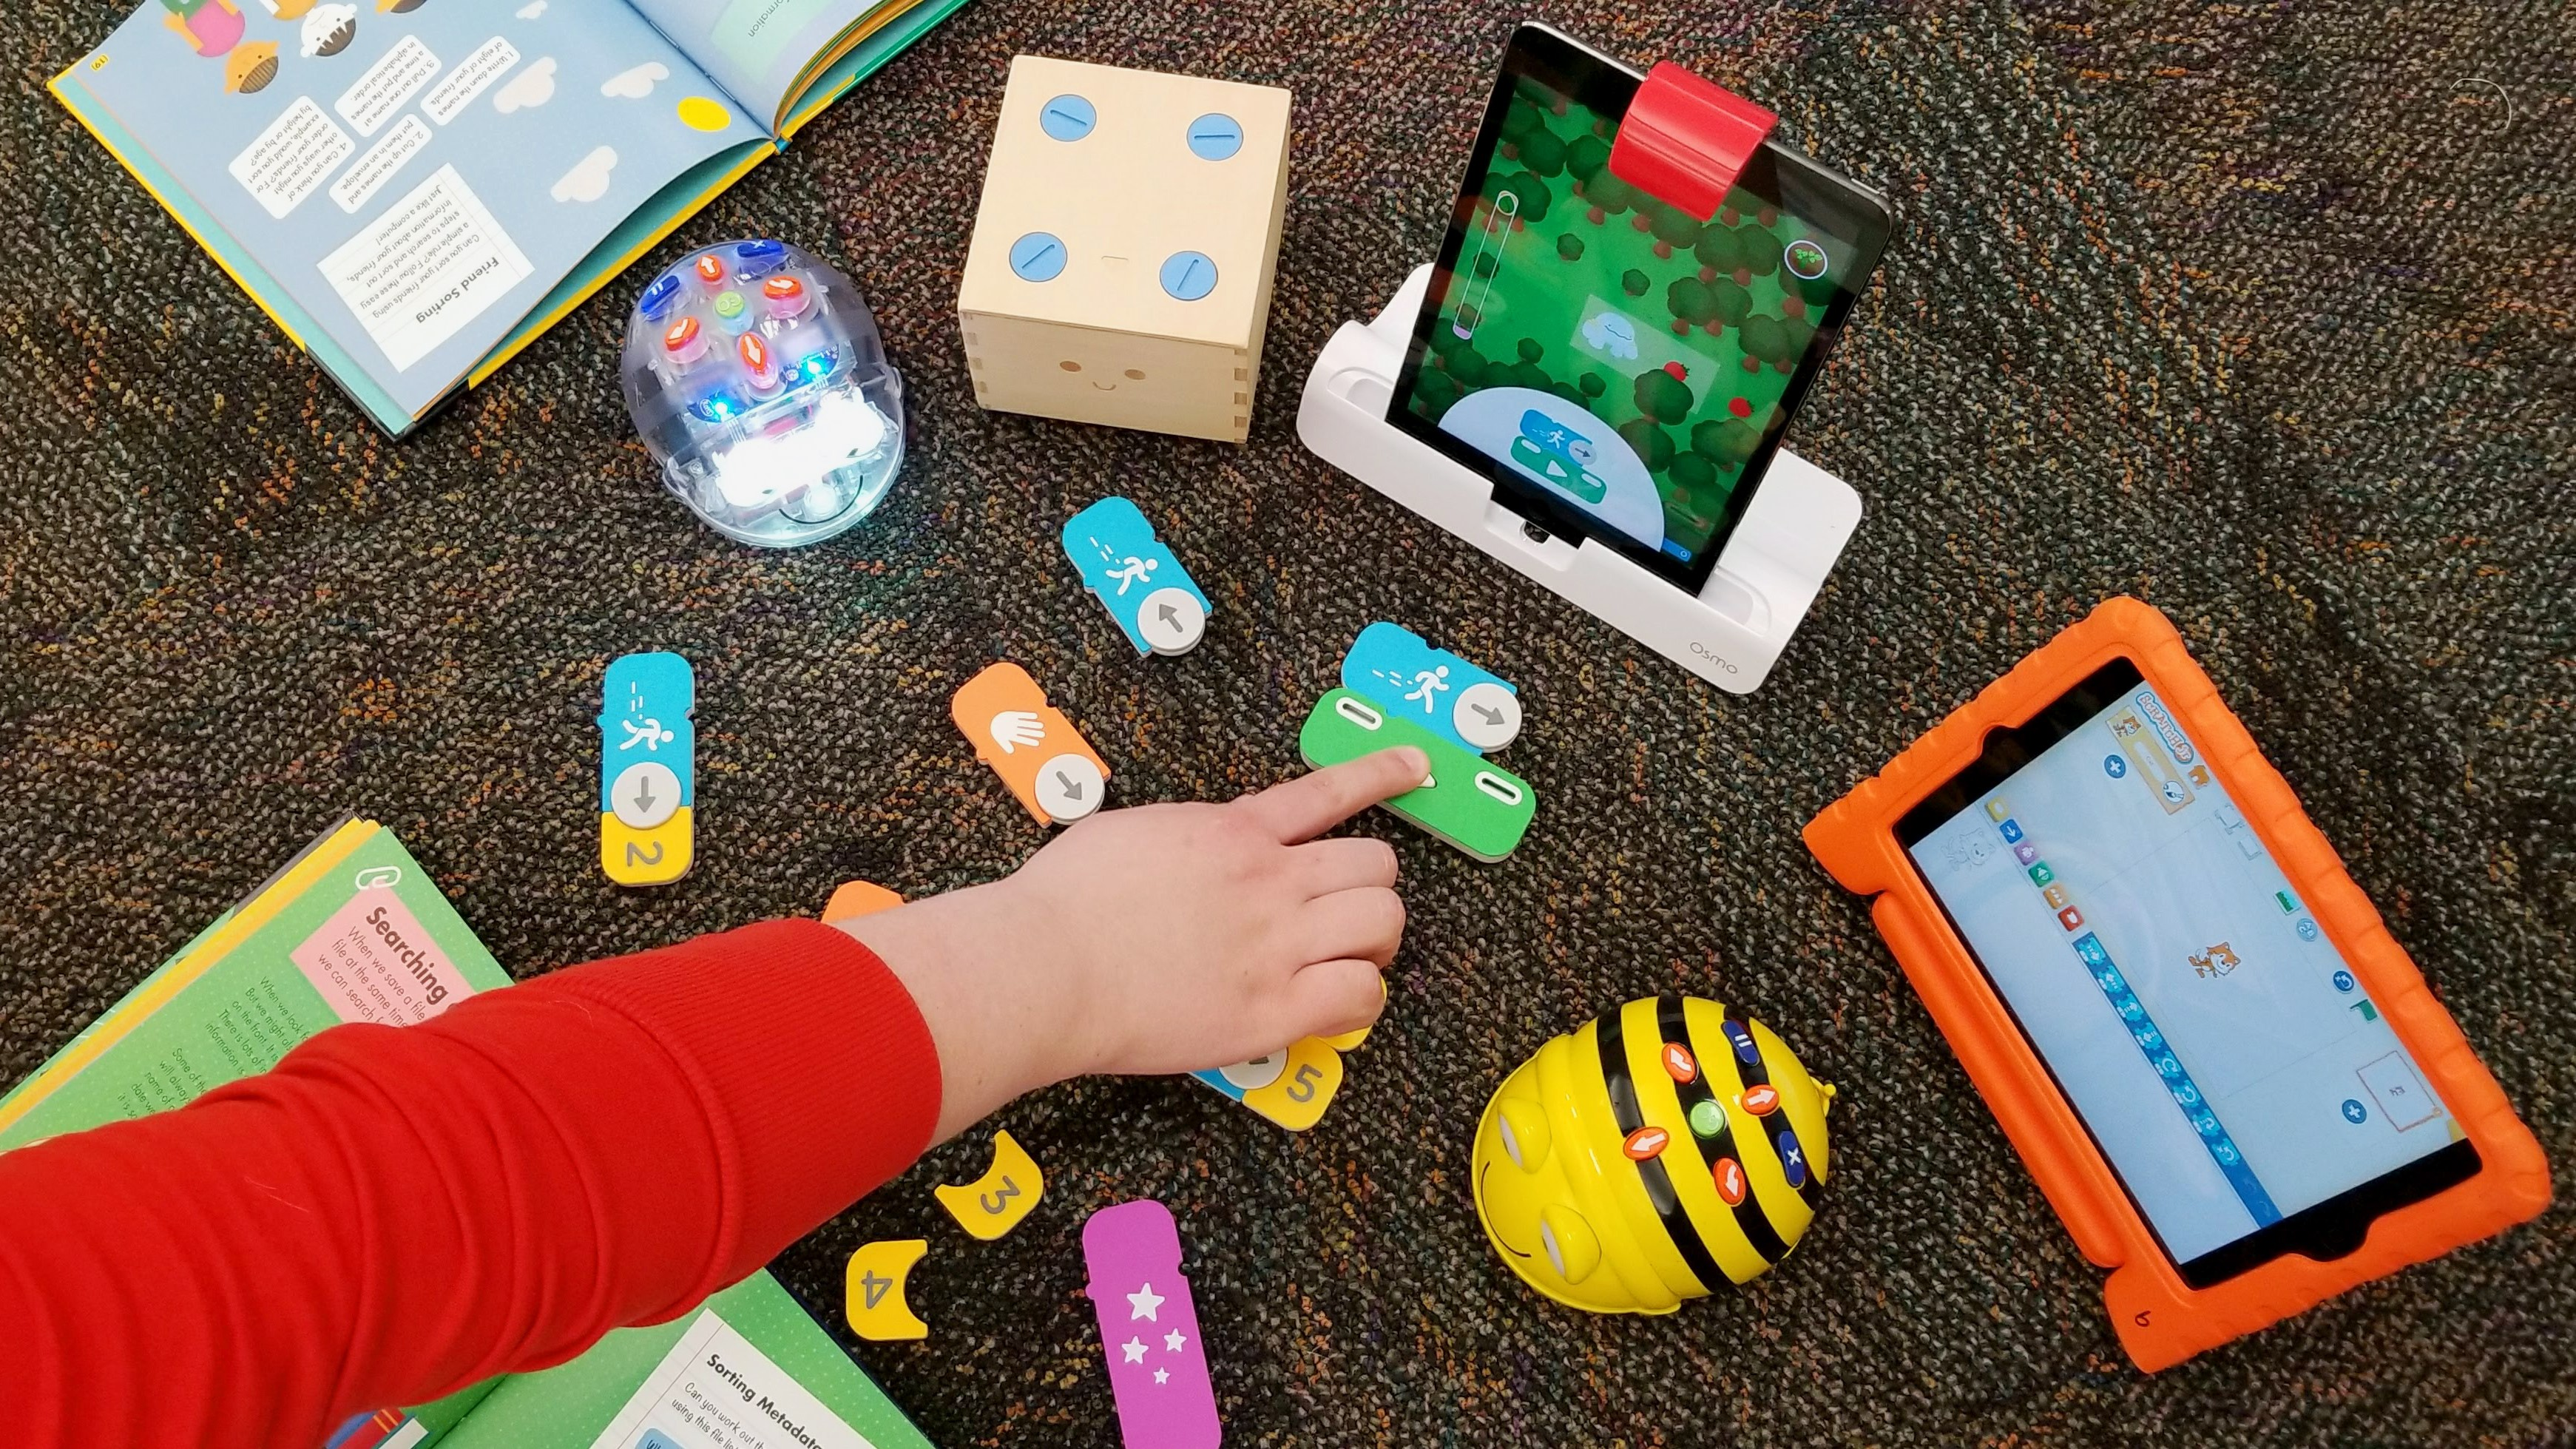 Bee Bots, Osmos, and iPads are a great introduction to early technology.